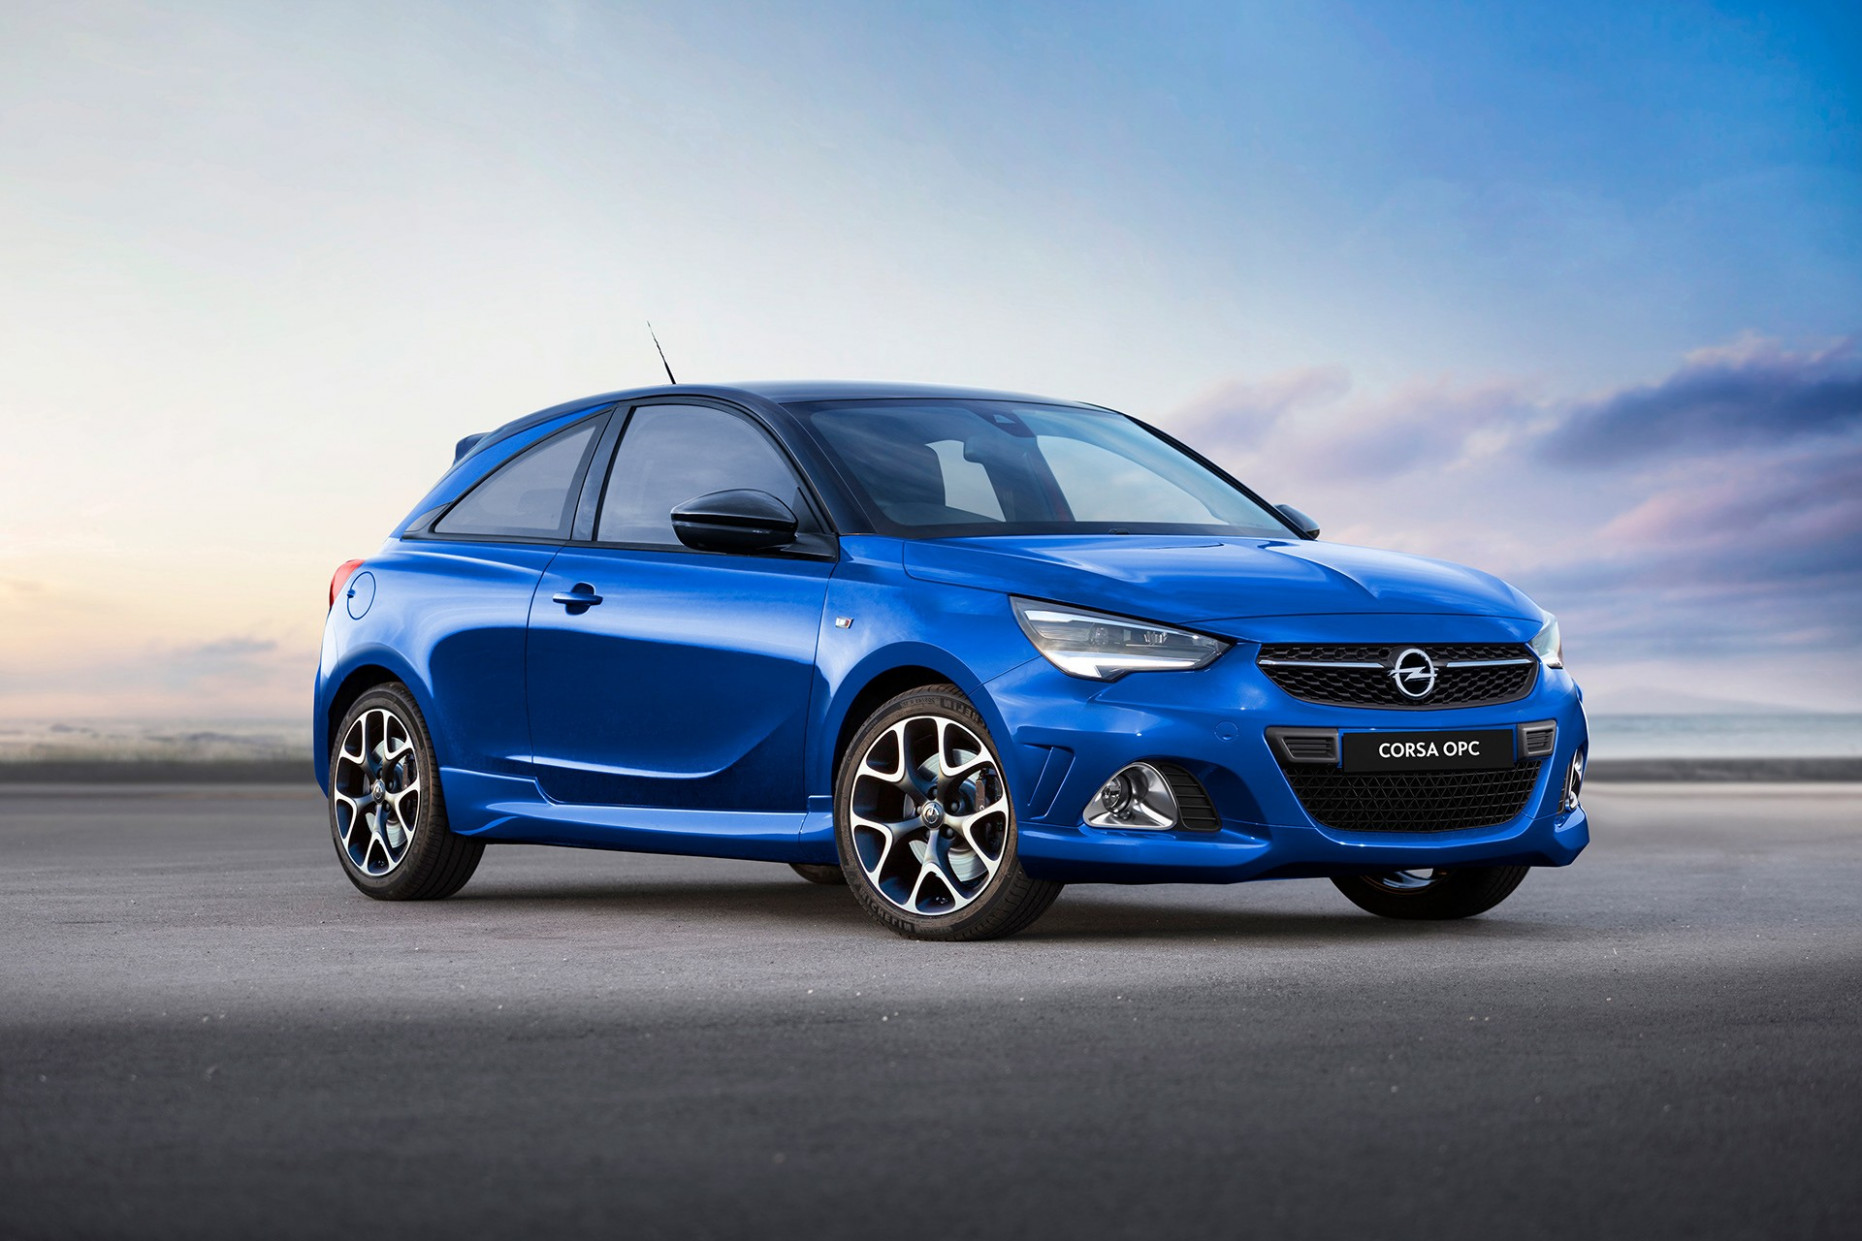 6 Opel Tigra OPC and Corsa OPC Rendered as Unlikely Hot ..